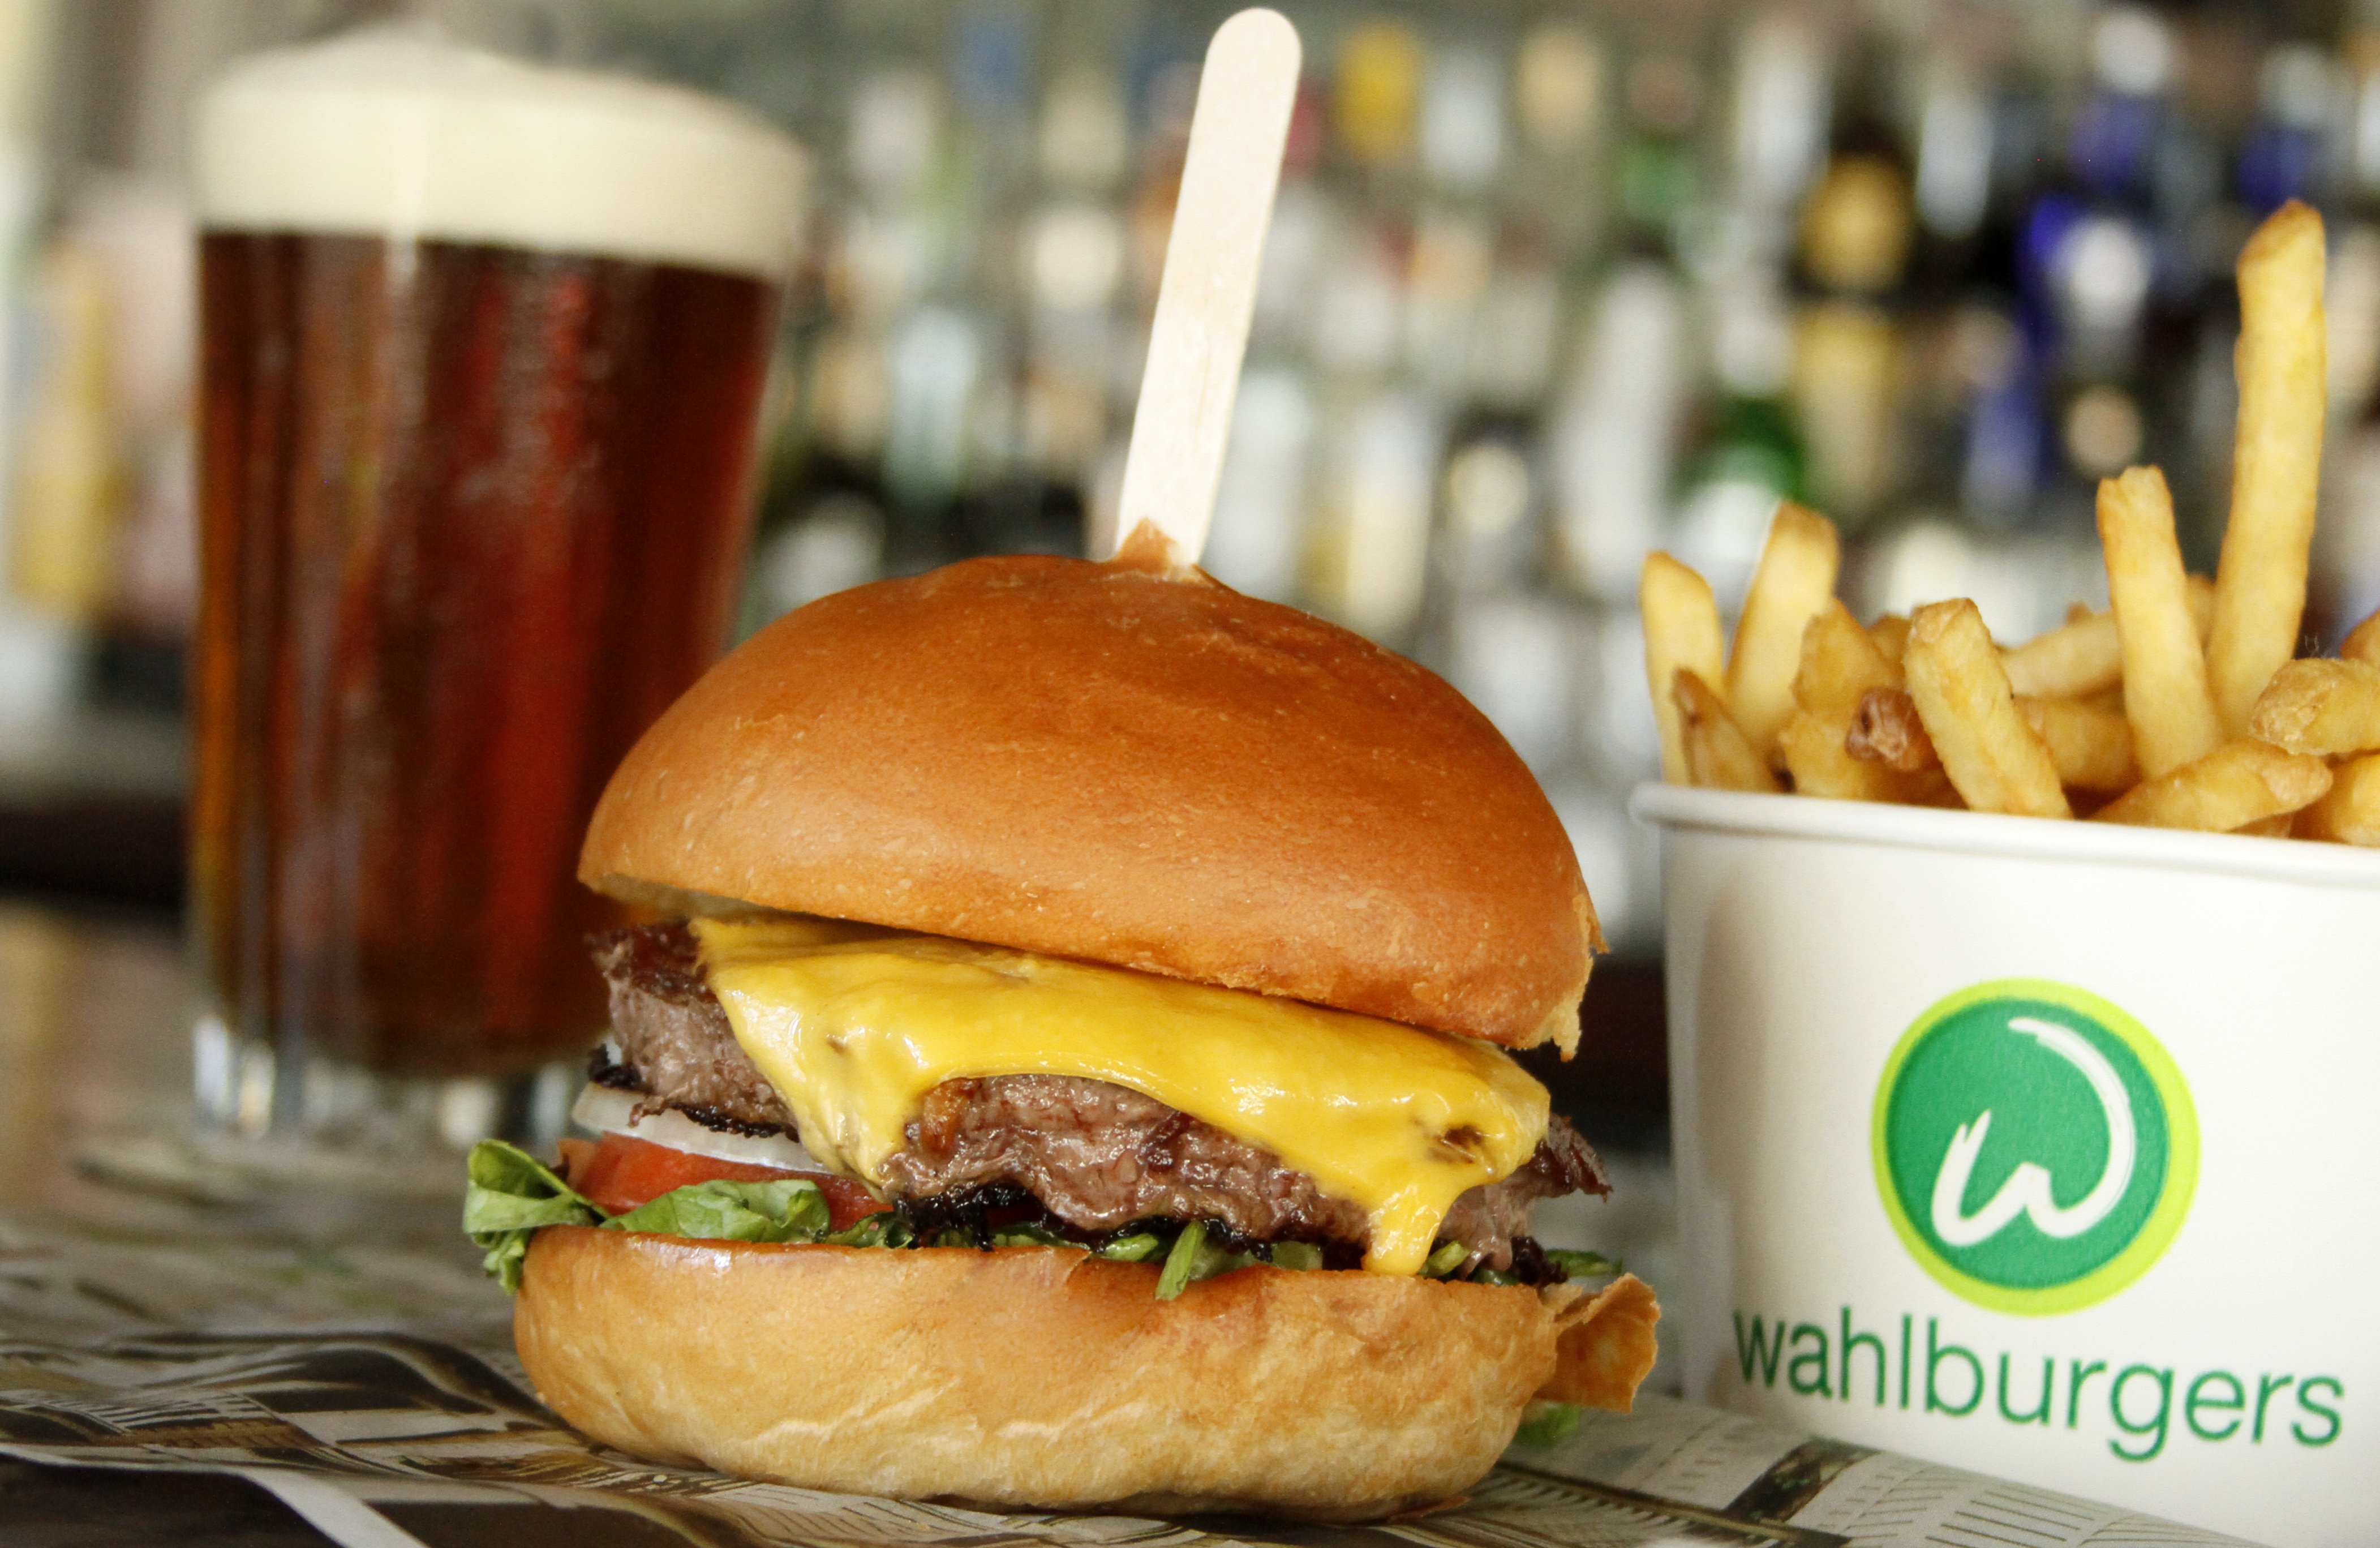 Wahlburgers to Open First Chicago Restaurant on Wednesday